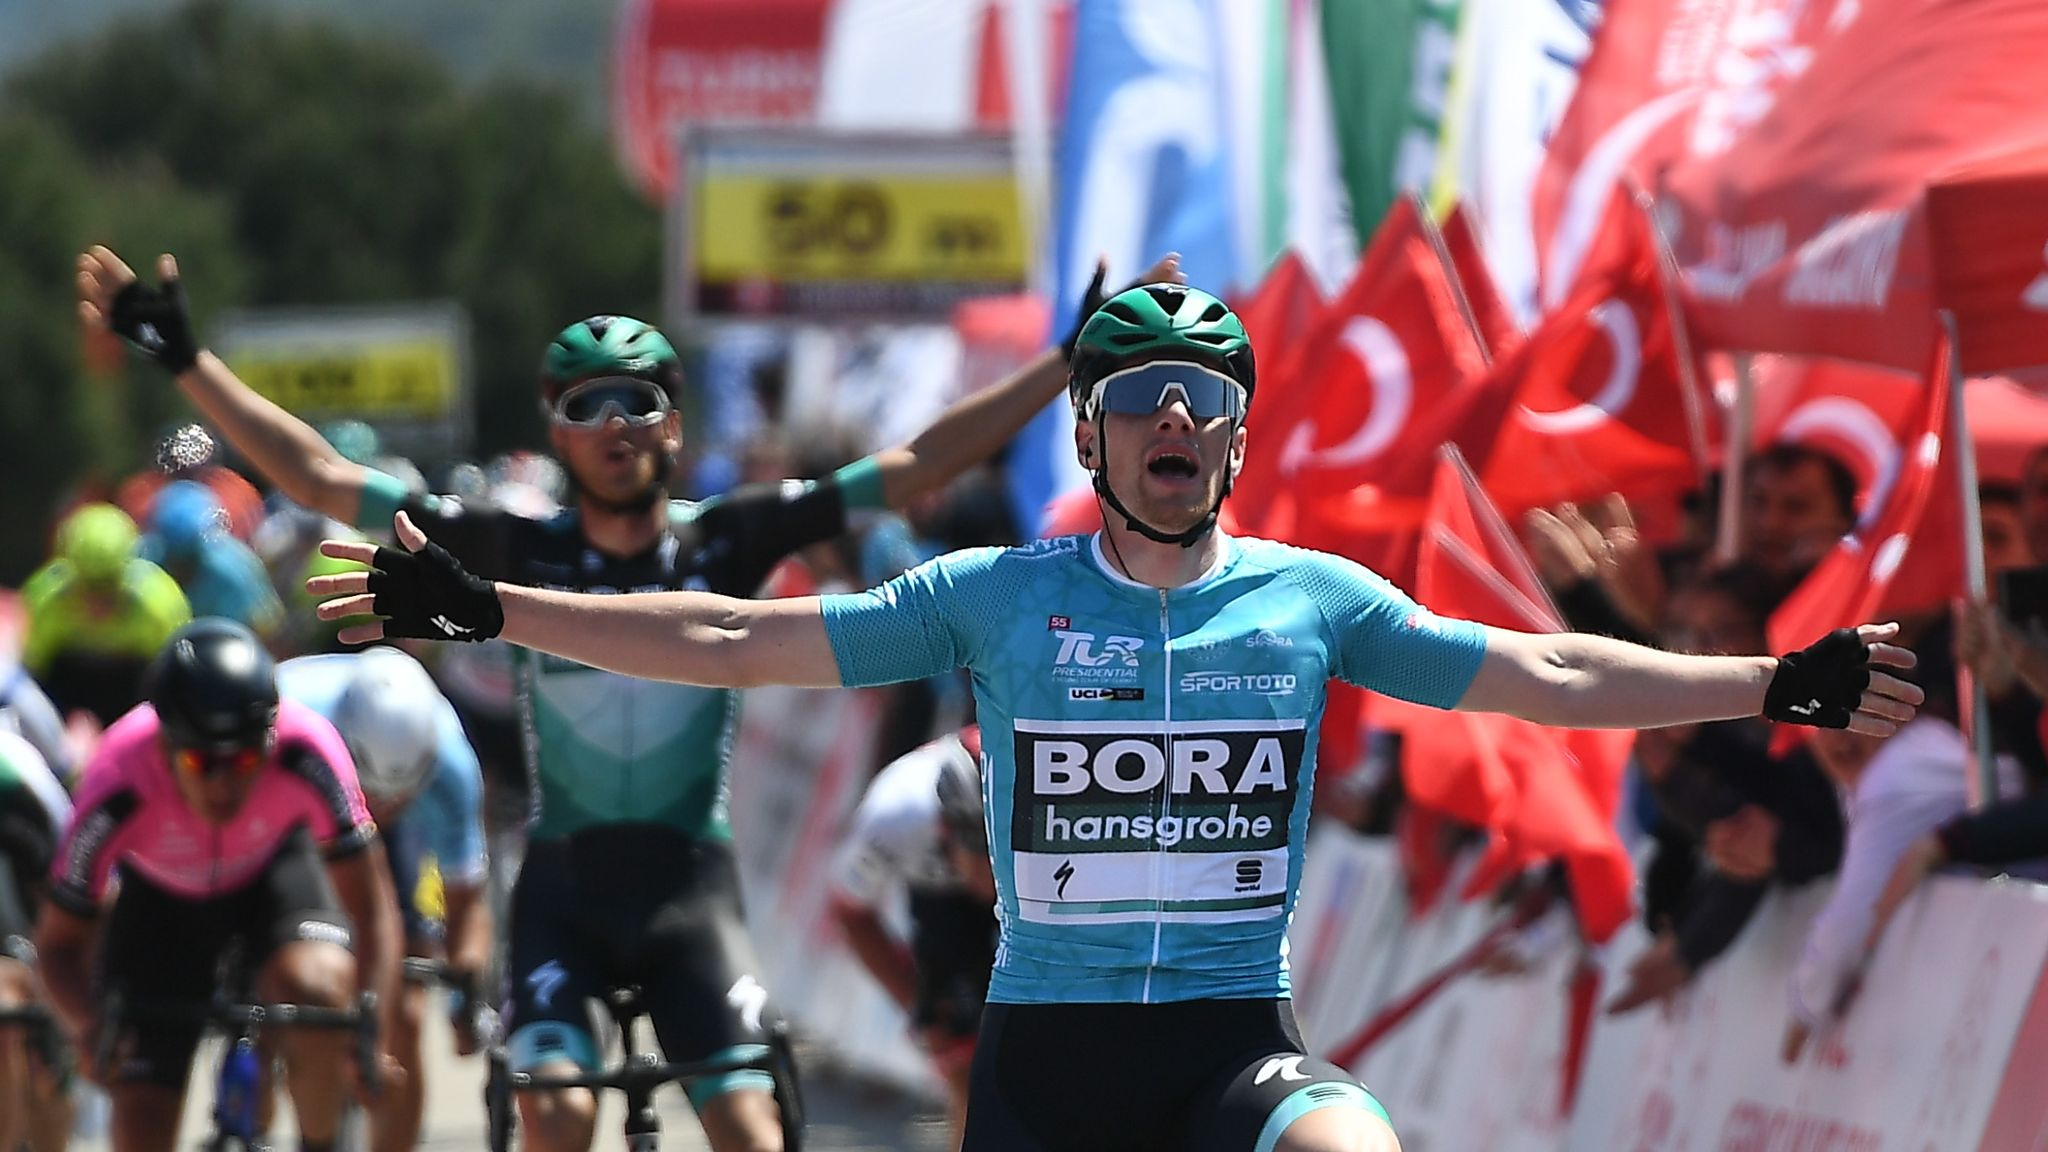 Sam Bennett departure from Brora-Hansgrohe confirmed